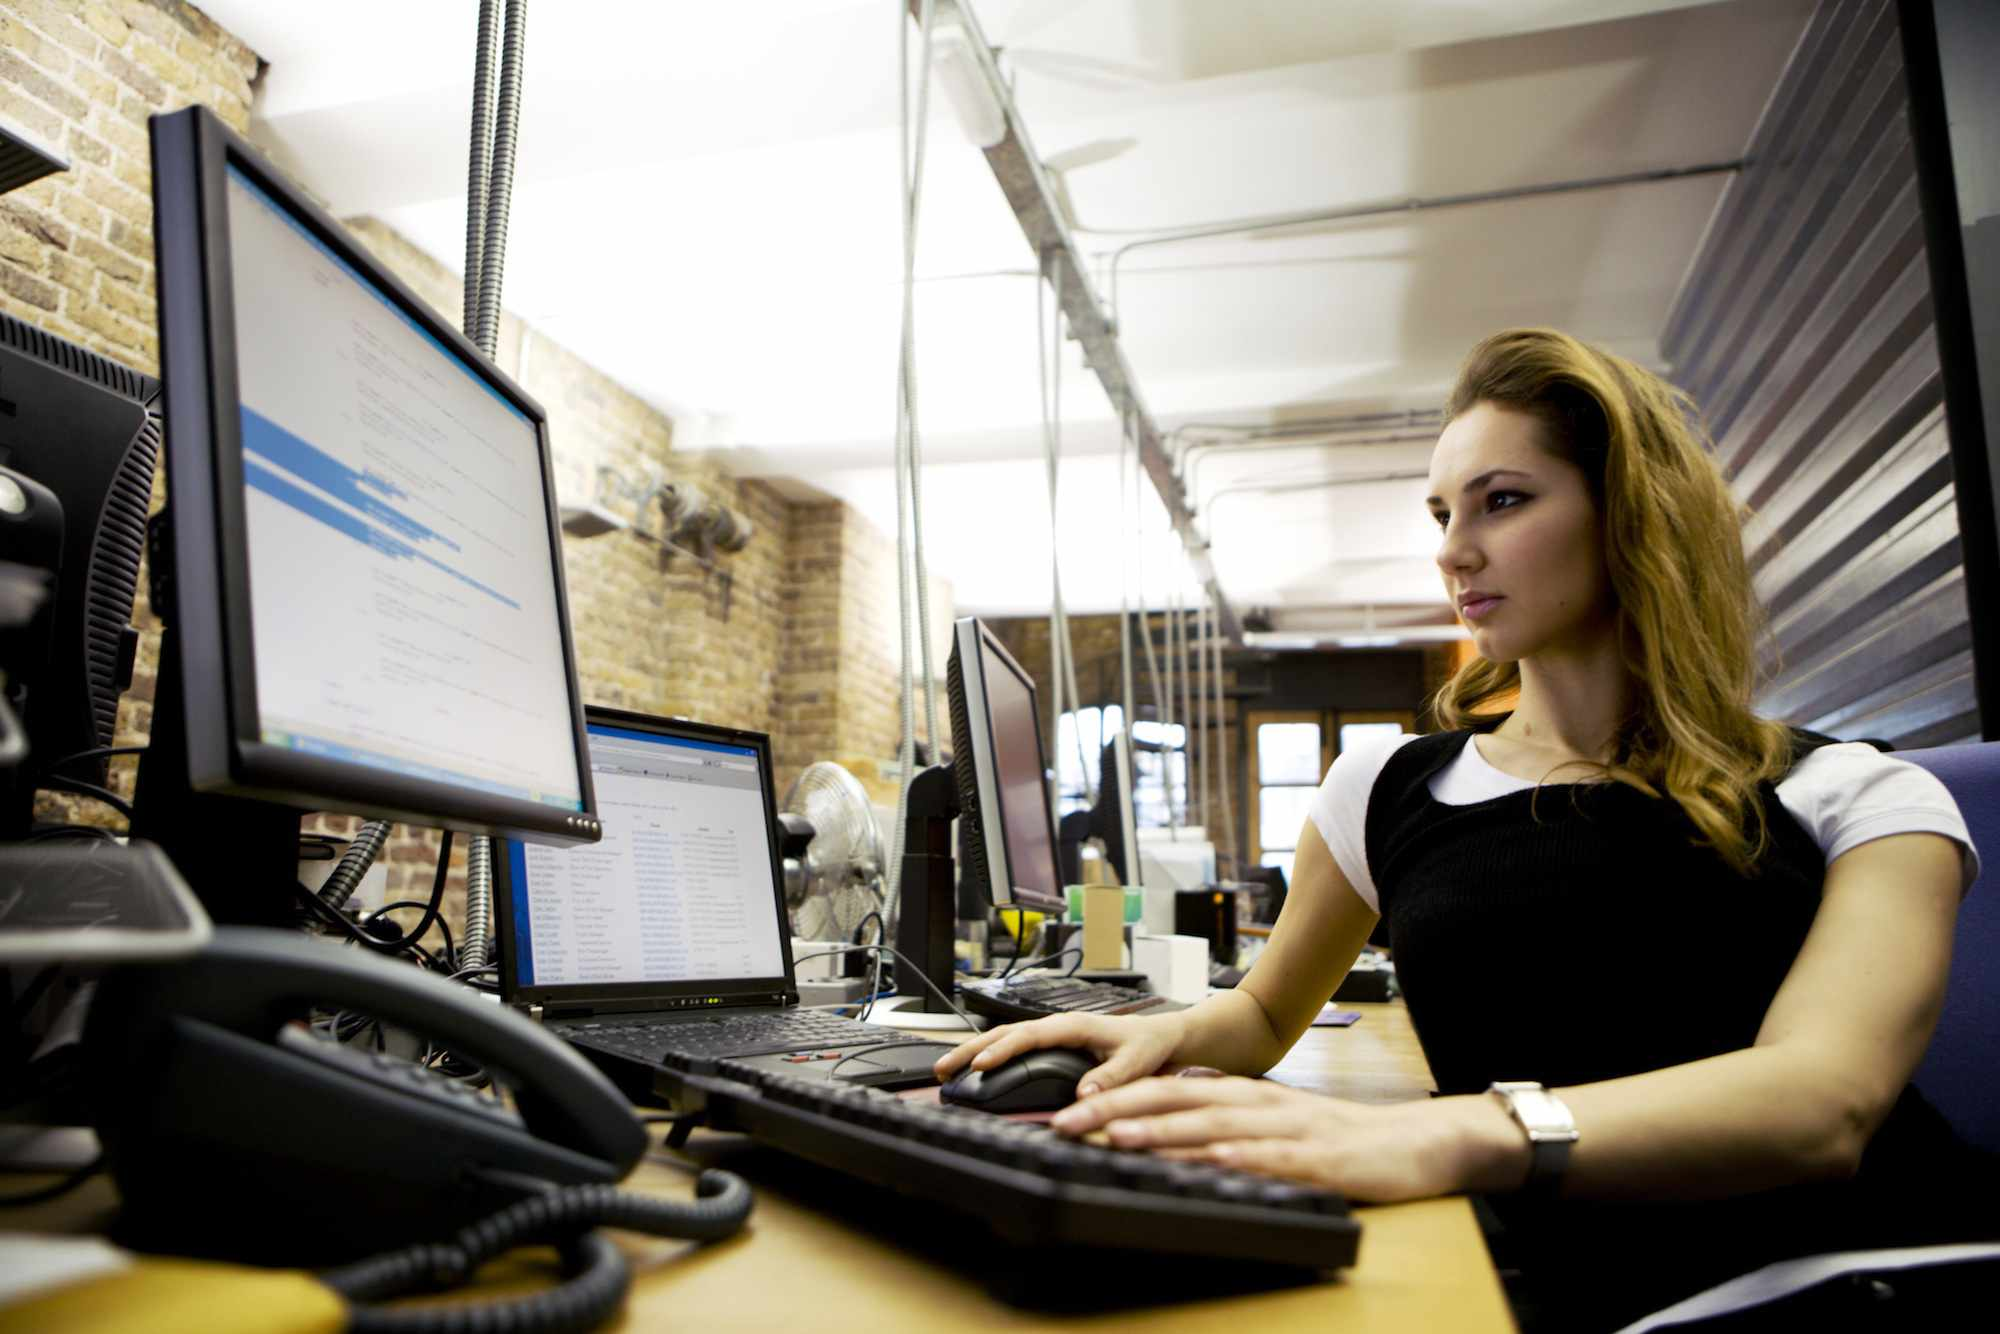 A woman sitting at a desk using a laptop with external keyboard and monitor.